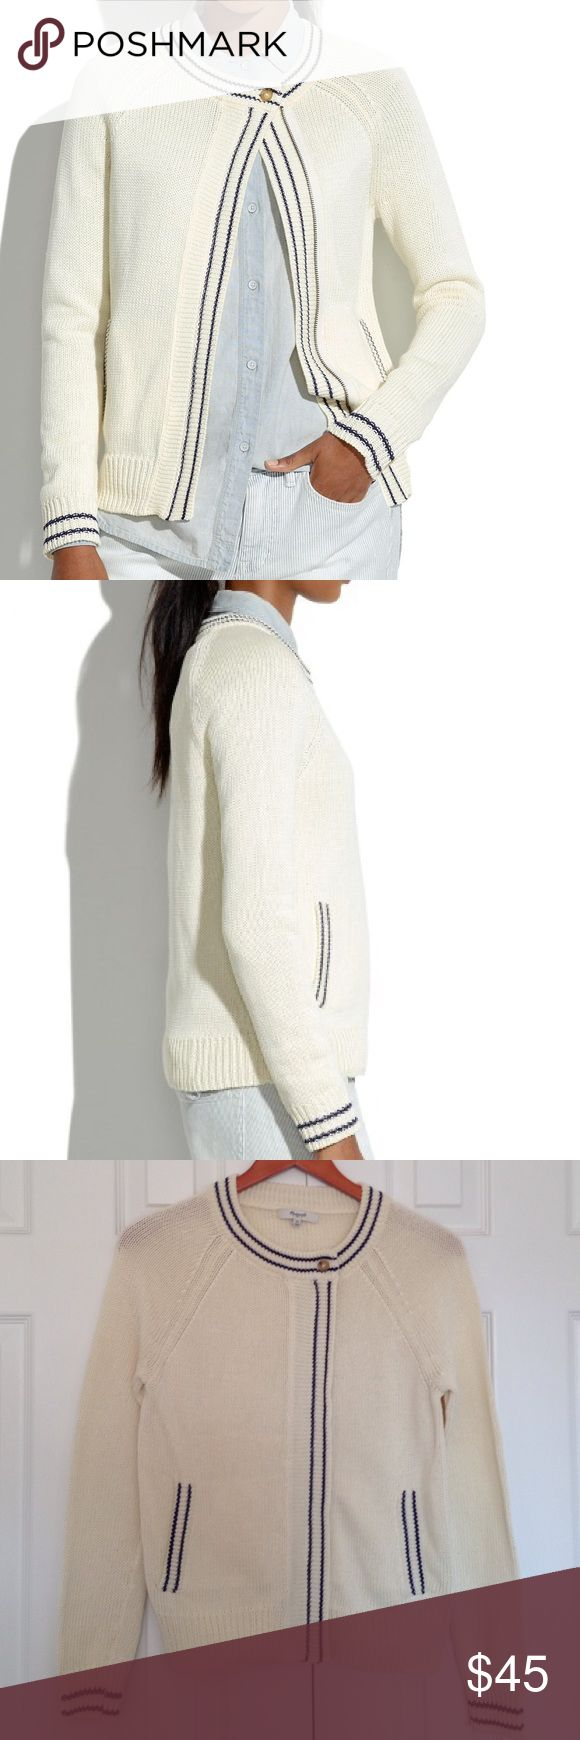 Madewell maritime cardigan Inspired by a vintage nautical cardigan, this stripe-tipped sweater has an unexpected (and so easy) zip-up front.  Cotton. Hand wash.   Look brand New. NO trade!!! Trade!!' Madewell Sweaters Cardigans